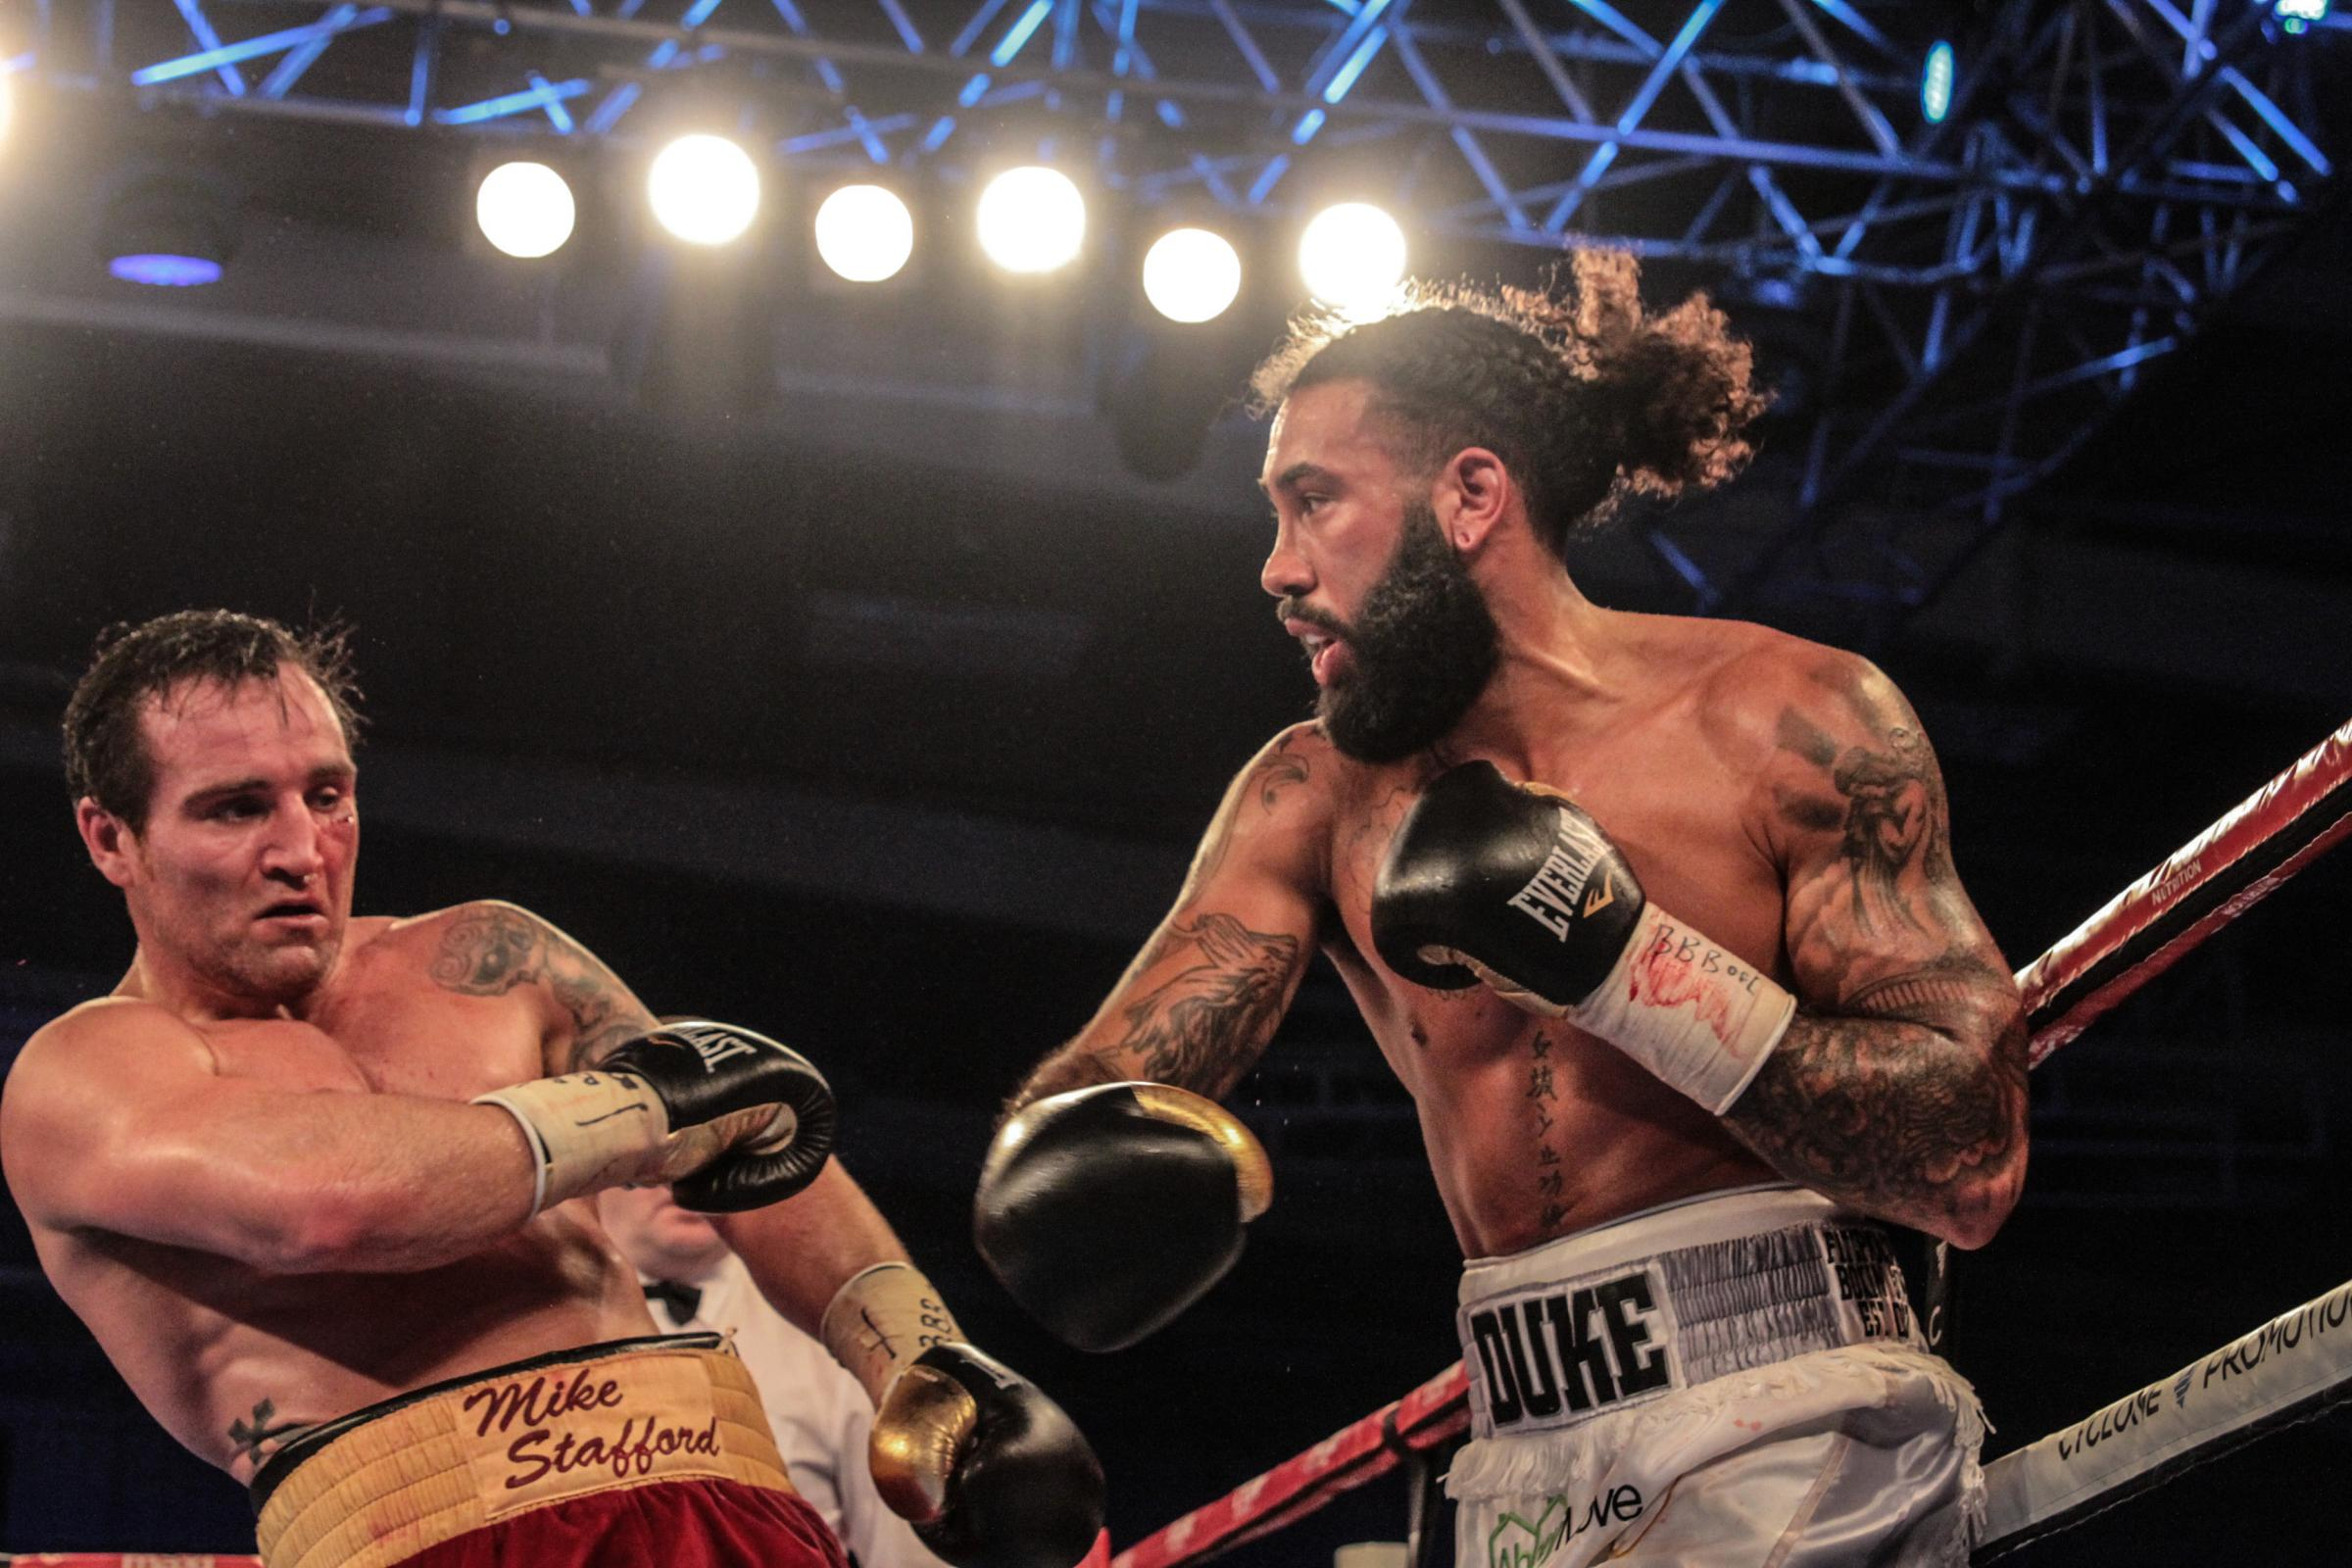 Luke Watkins (right) in action during his recent win over Mike Stafford. PICTURE: NAOMI YOUD